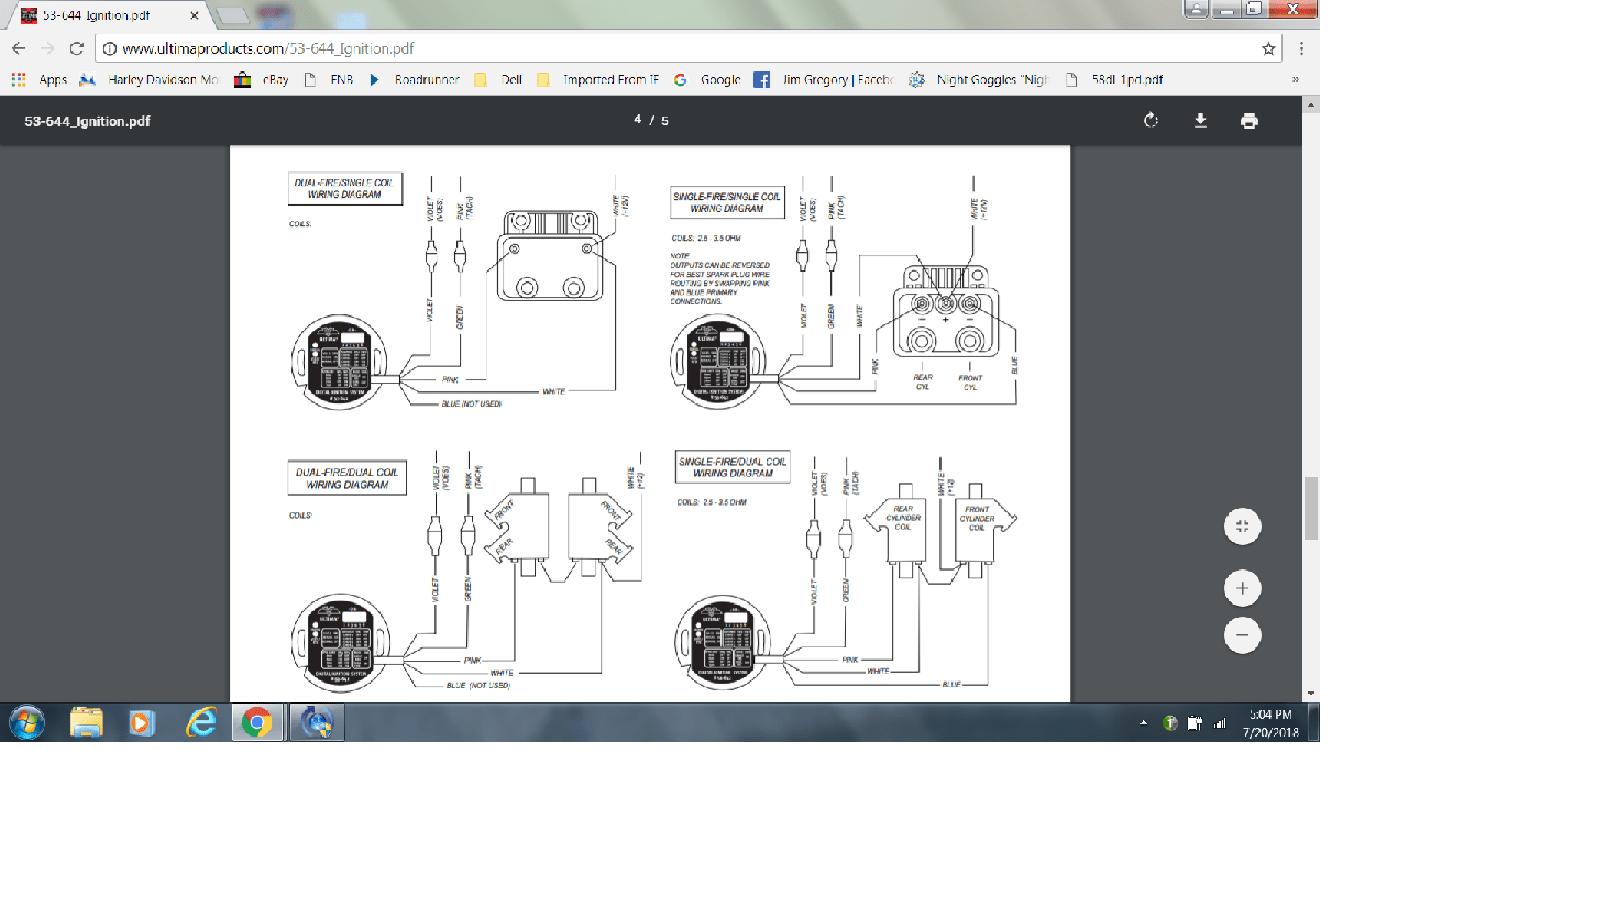 hight resolution of ultima 53 645 wiring harley davidson forums msa ultima x5000 wiring diagram received 381 likes on